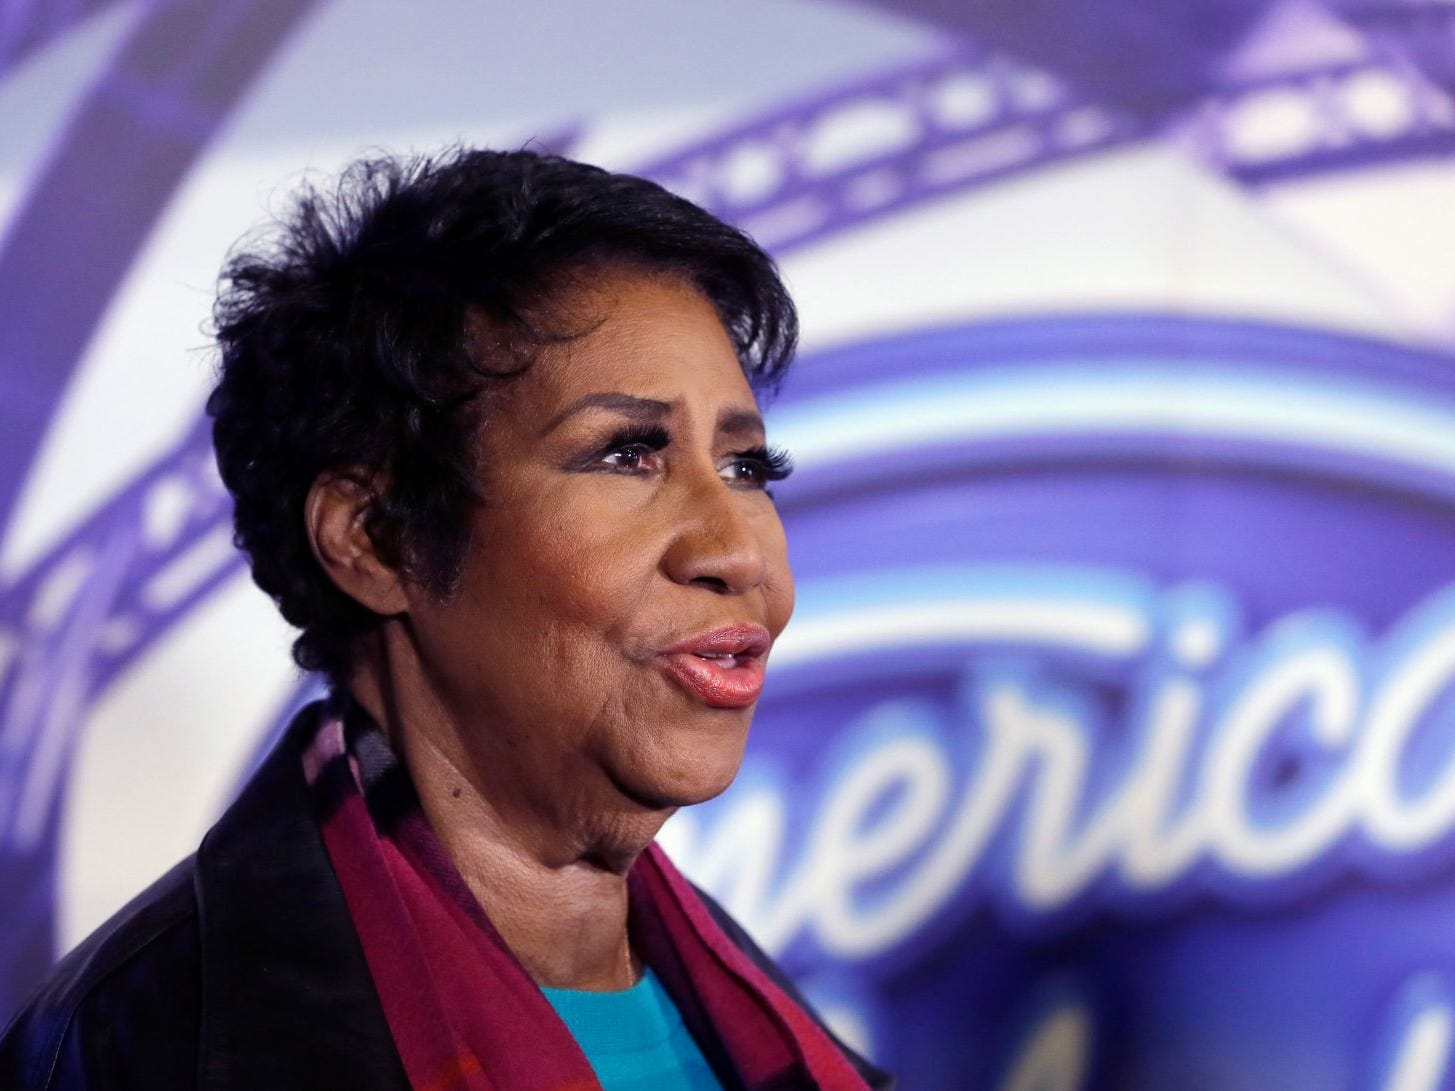 "In a March 4, 2015, file photo, singer Aretha Franklin is interviewed after a taping for American Idol XIV at The Fillmore Detroit. A federal judge in Denver on Friday, Sept. 4, 2015, blocked the scheduled screening at the Telluride Film Festival of the film ""Amazing Grace,"" which features footage from 1972 of a Franklin concert, after the singer objected to its release."